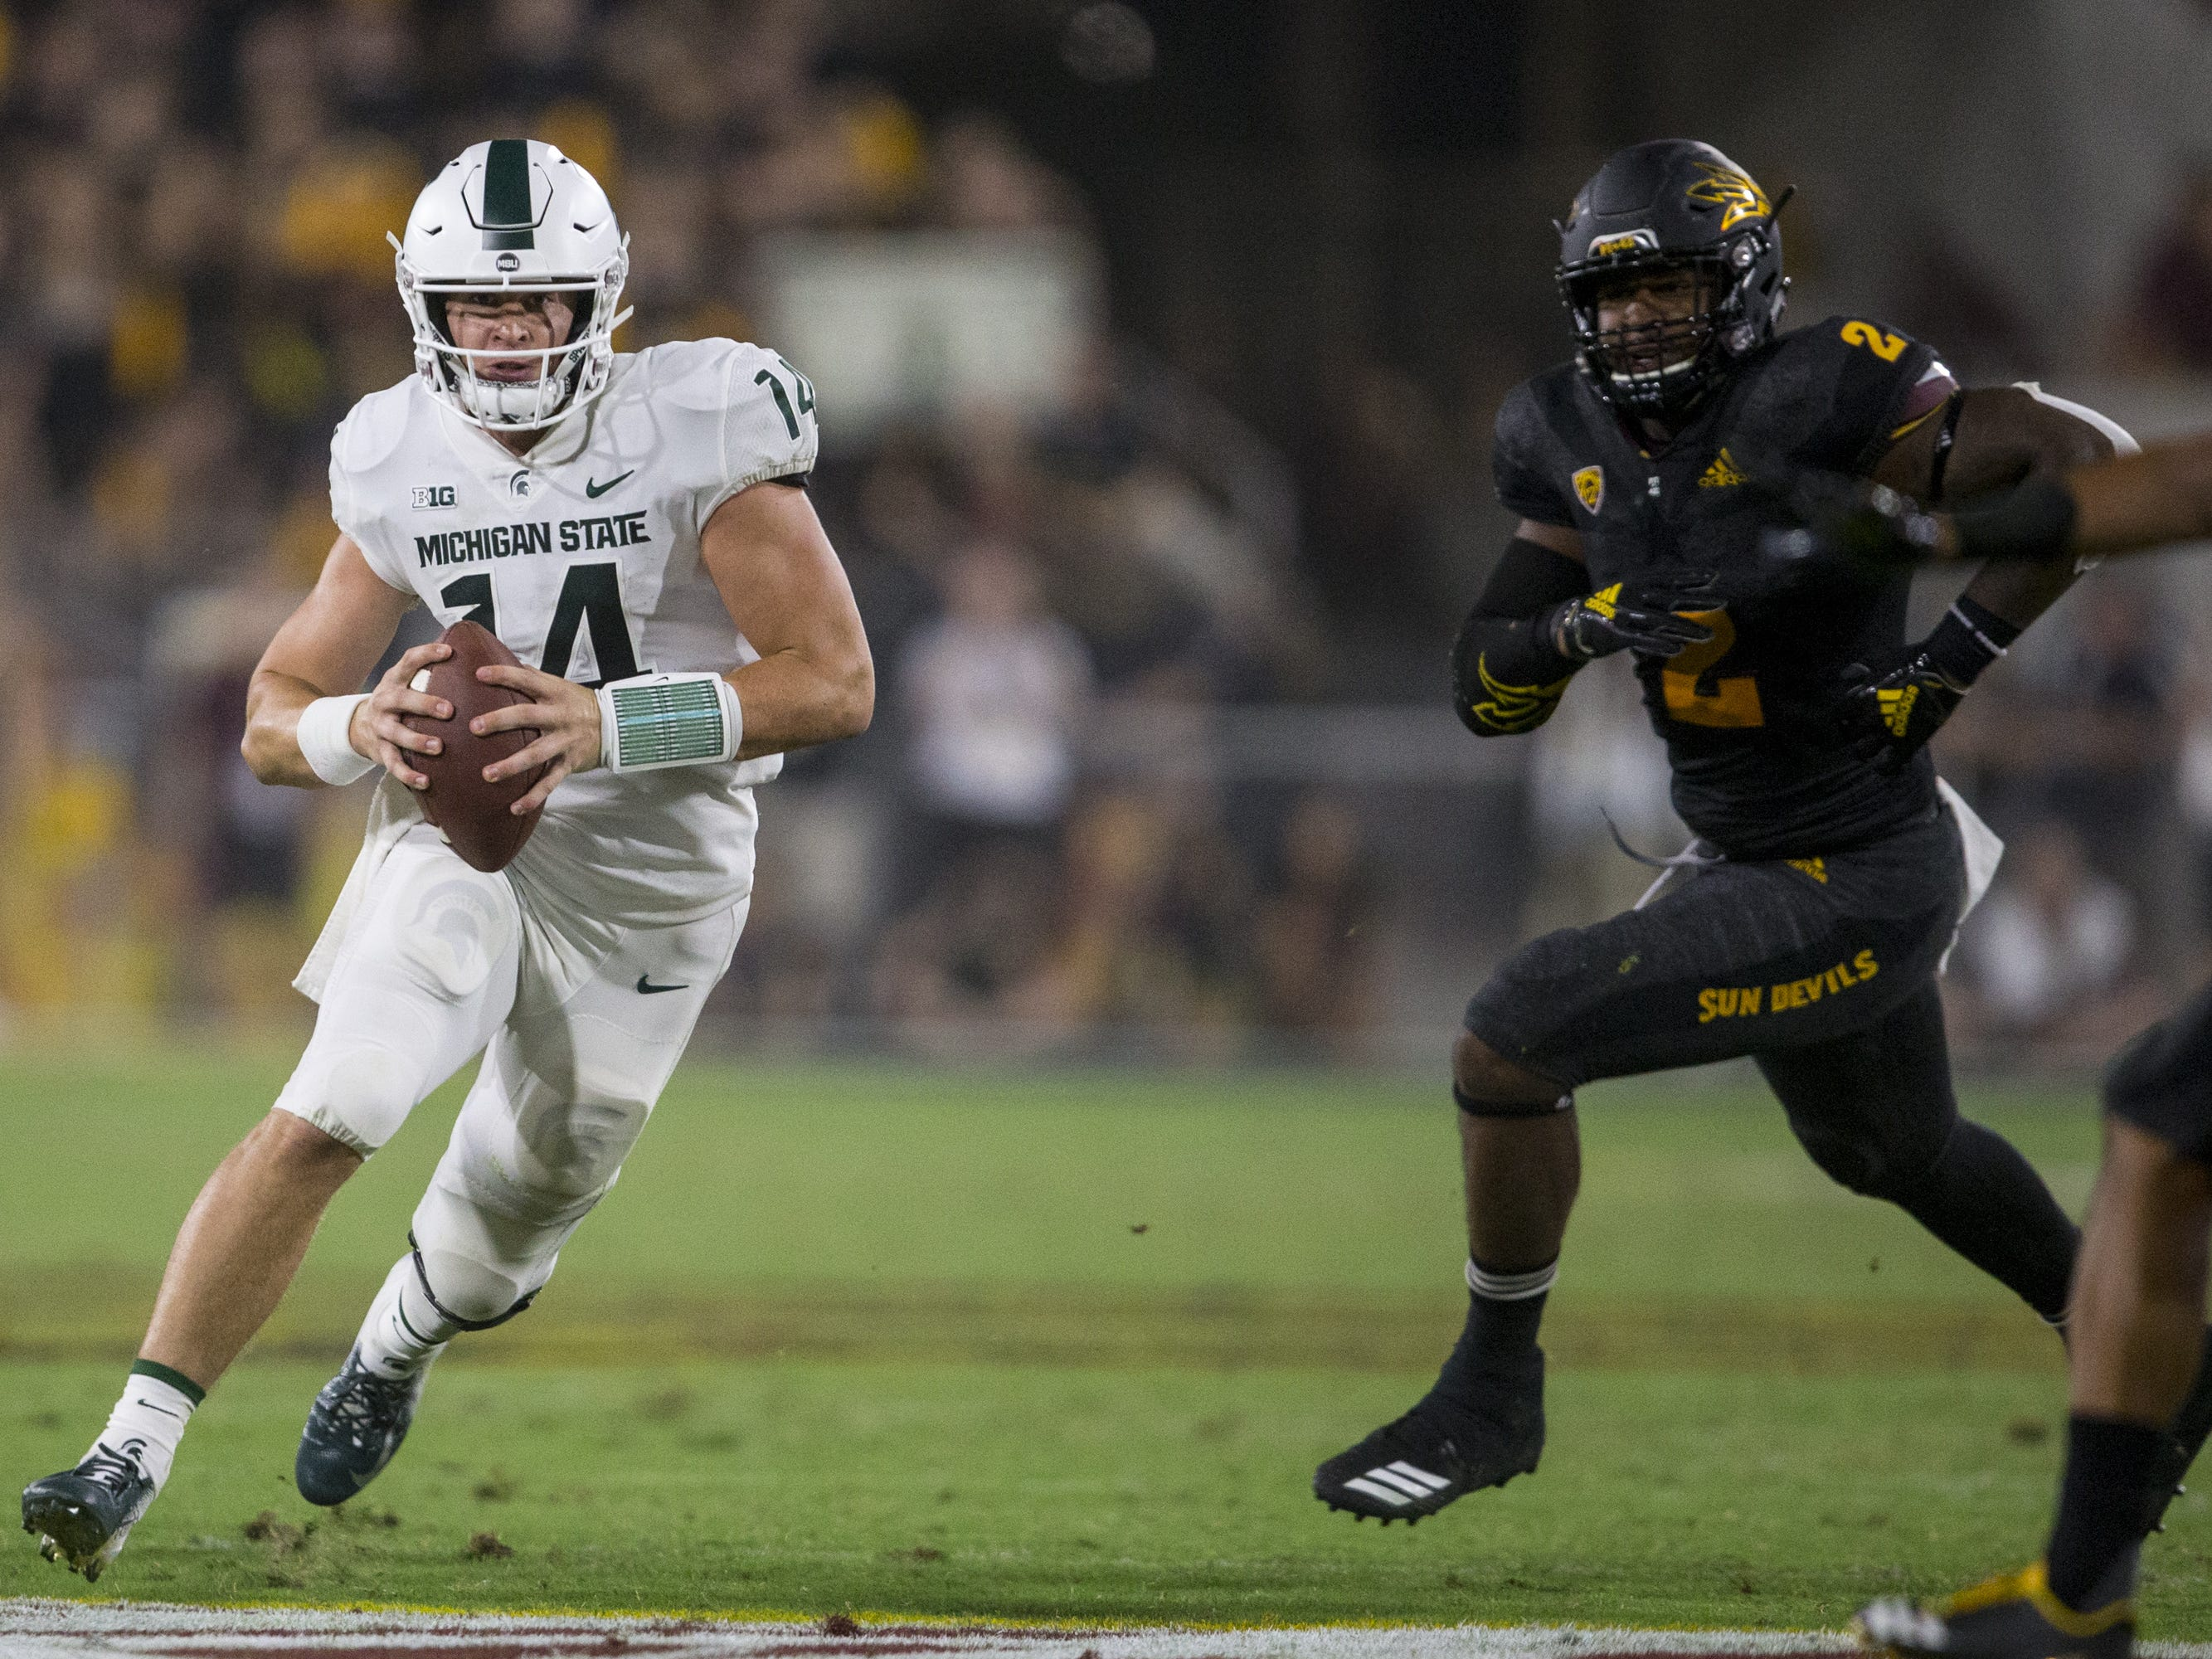 Michigan State's Brian Lewerke runs on an option play against Arizona State in the 3rd quarter on Saturday, Sept. 8, 2018, at Sun Devil Stadium in Tempe, Ariz.